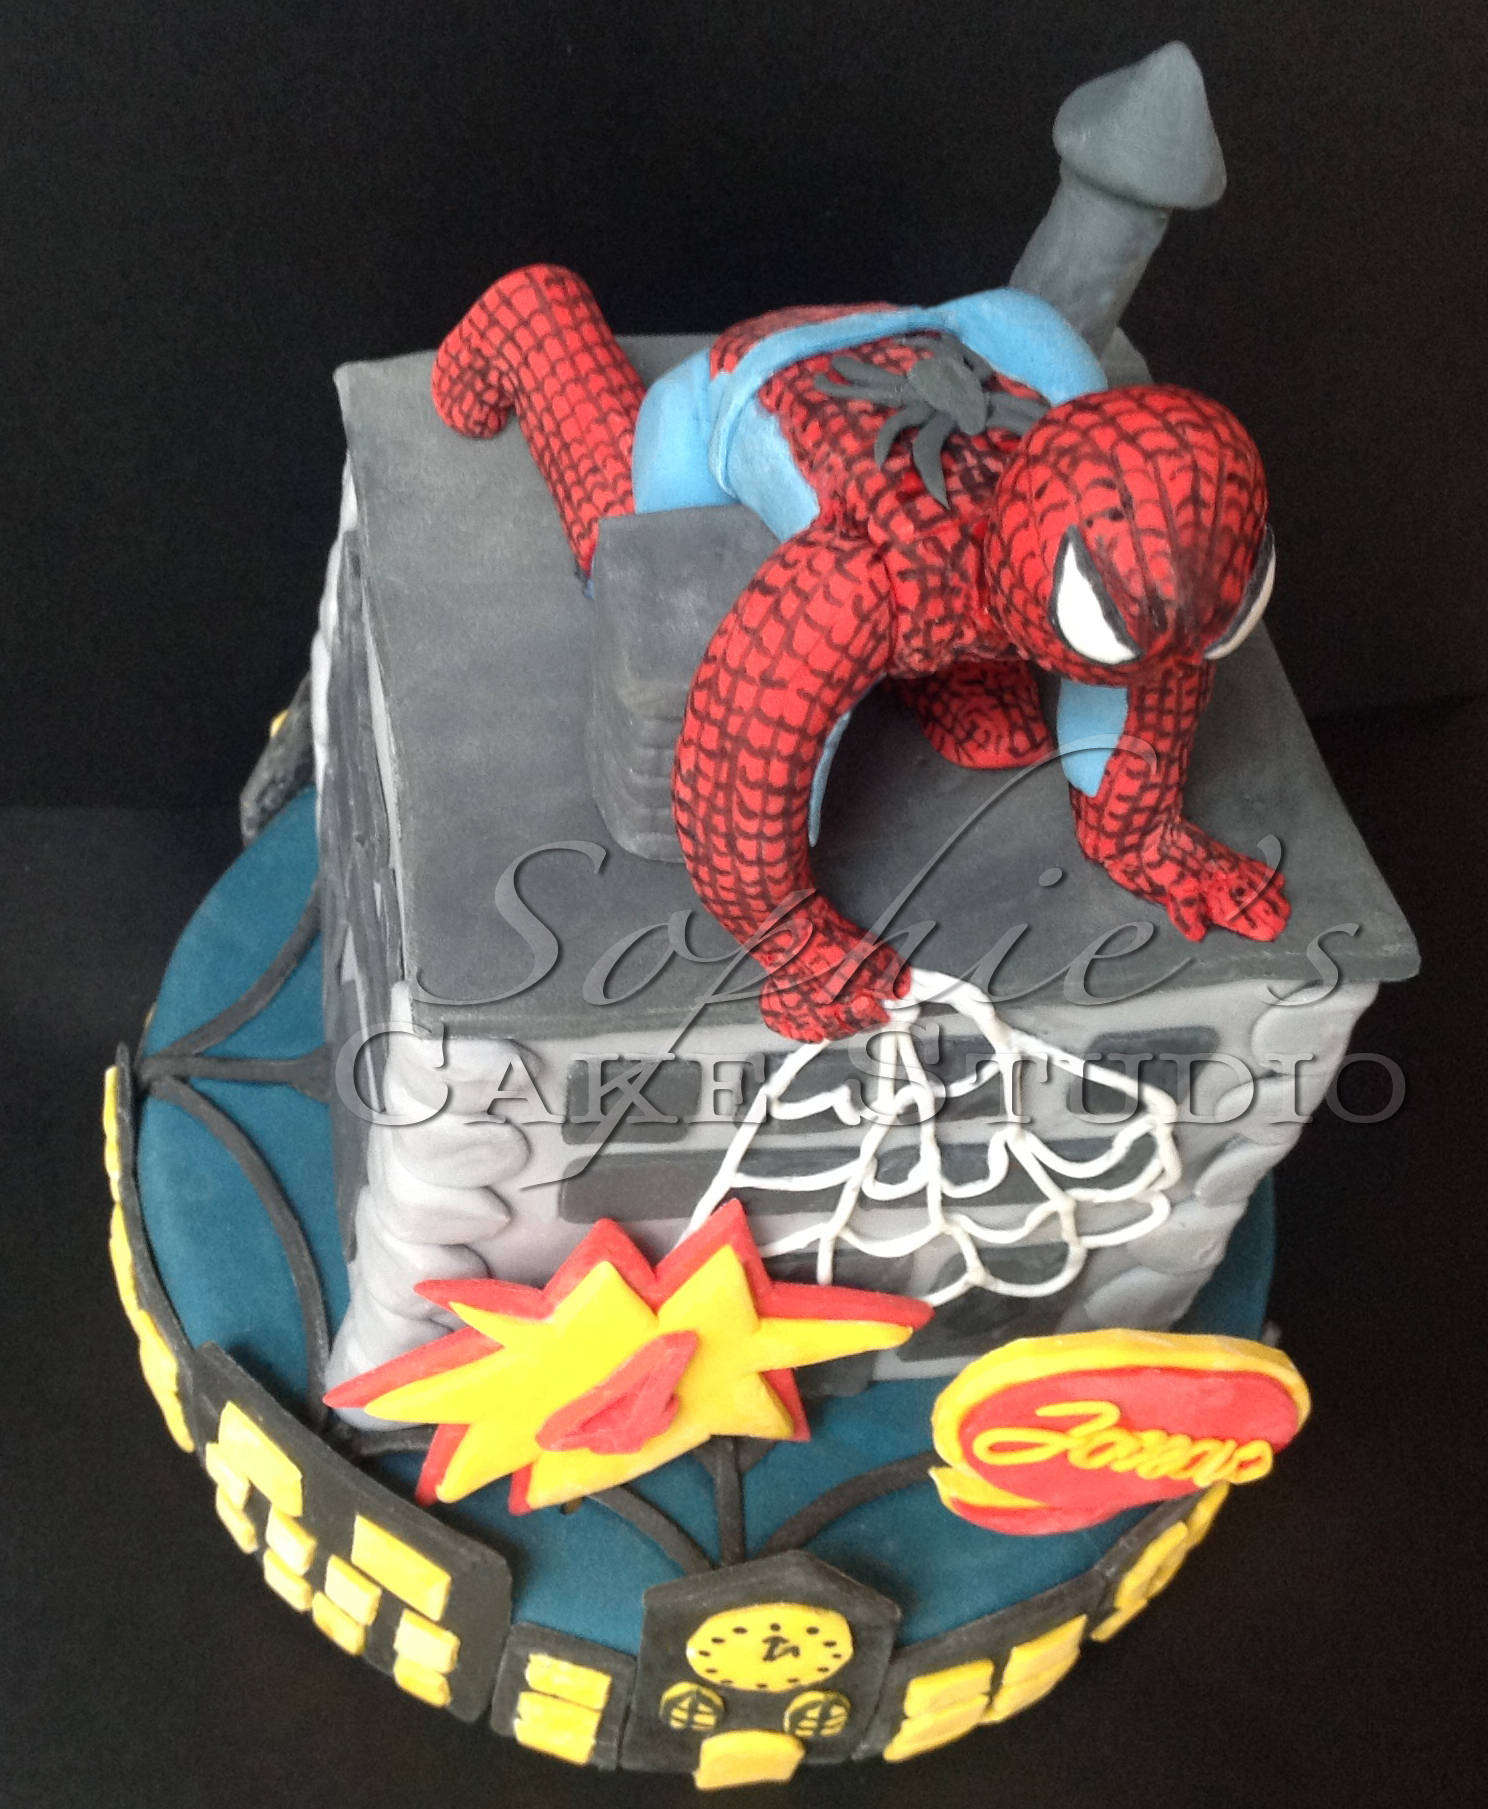 spiderman cake detail watermark